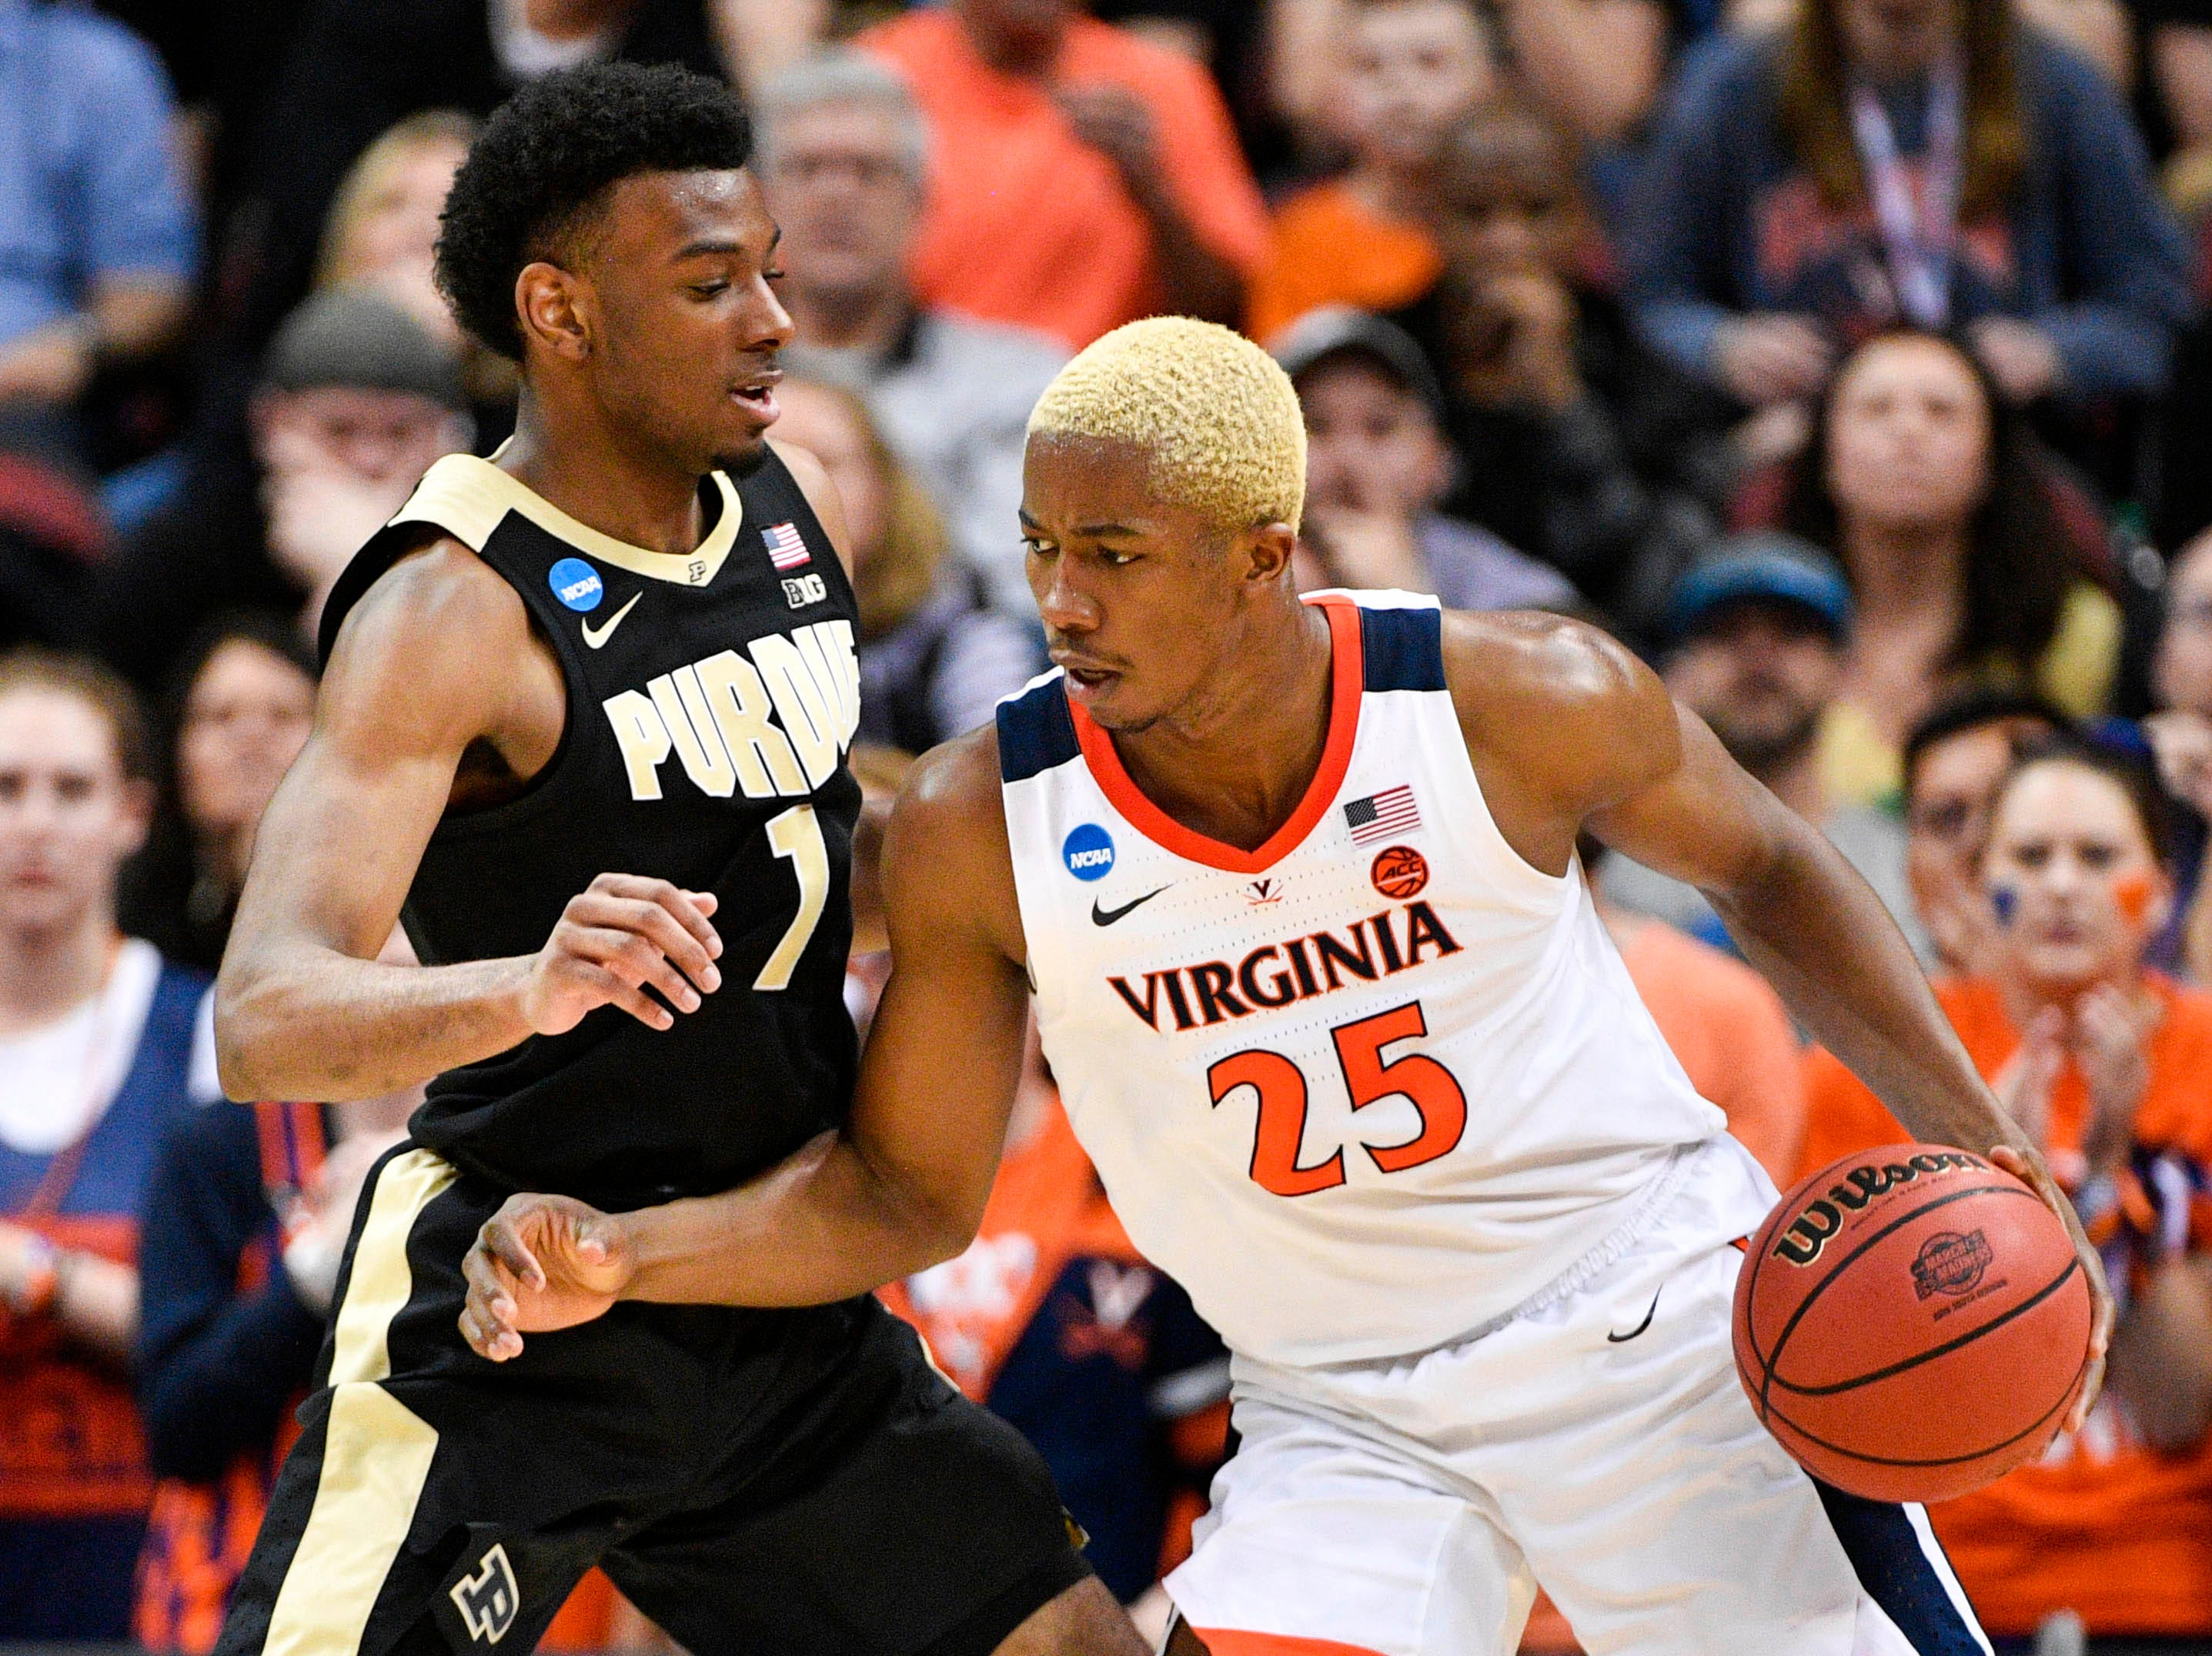 Mar 30, 2019; Louisville, KY, United States; Virginia Cavaliers forward Mamadi Diakite (25) works around Purdue Boilermakers forward Aaron Wheeler (1) during the second half in the championship game of the south regional of the 2019 NCAA Tournament at KFC Yum Center. Mandatory Credit: Jamie Rhodes-USA TODAY Sports